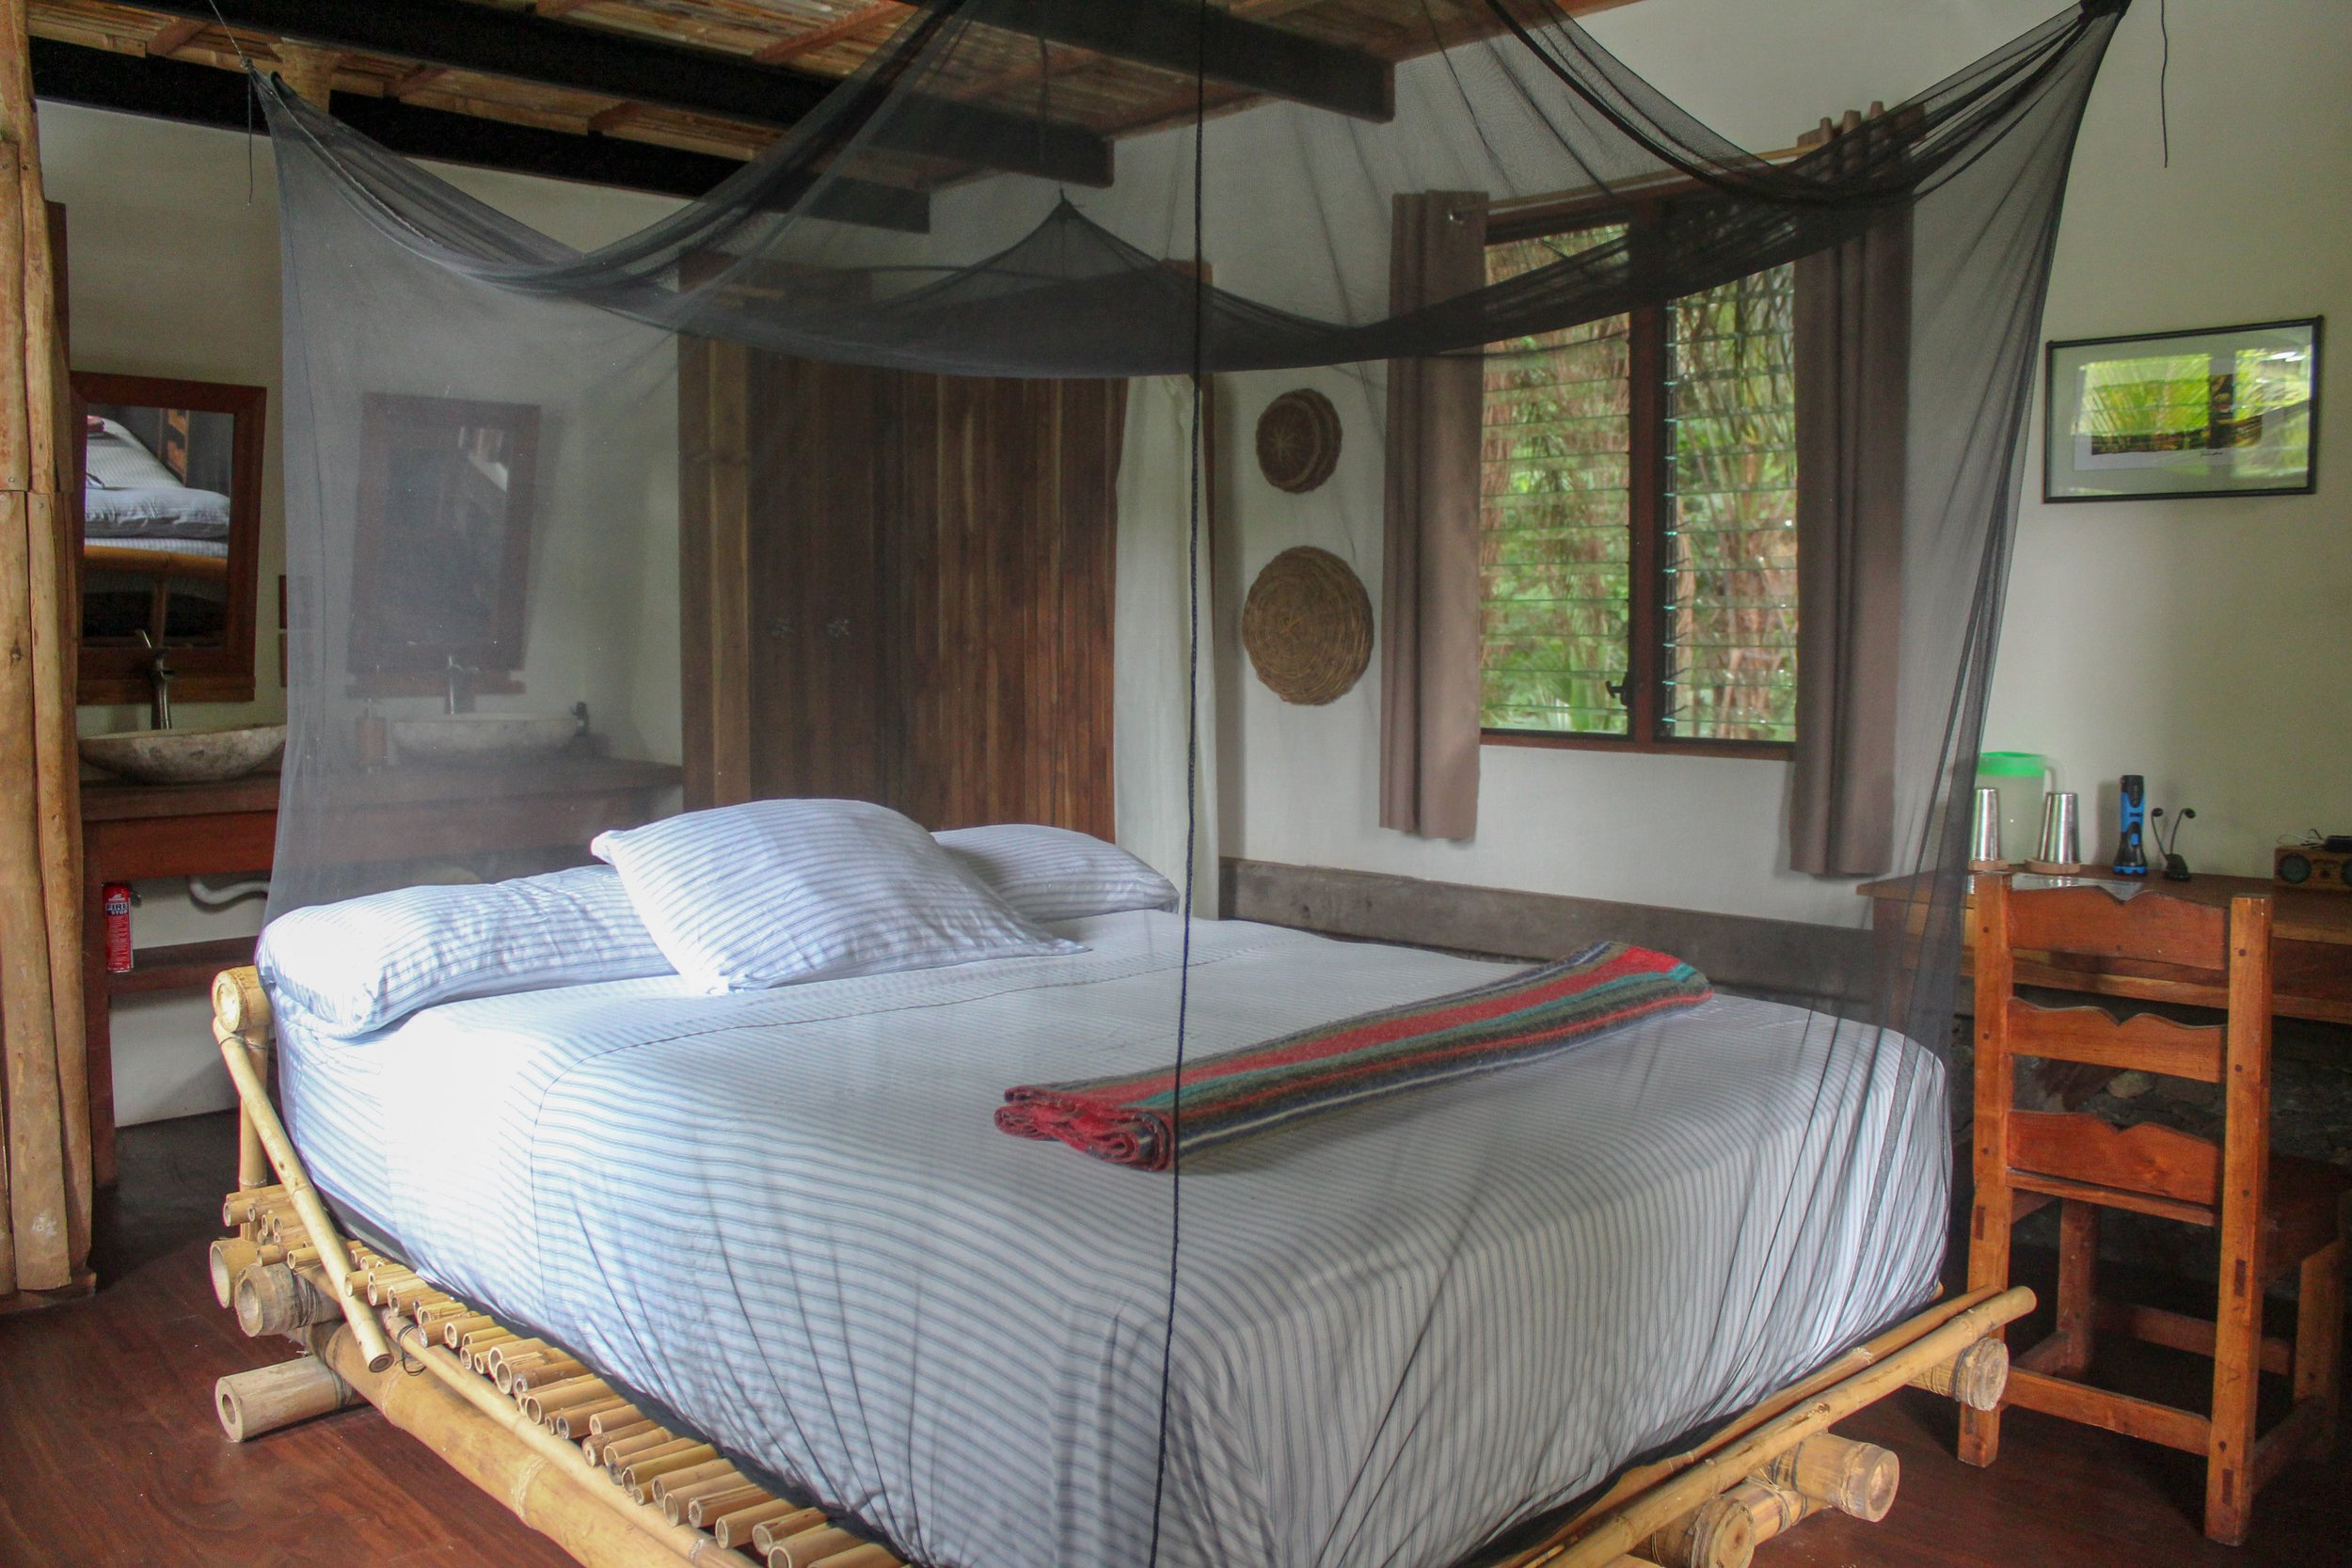 Luxury tree house options, Selvista Guesthouses queen suite